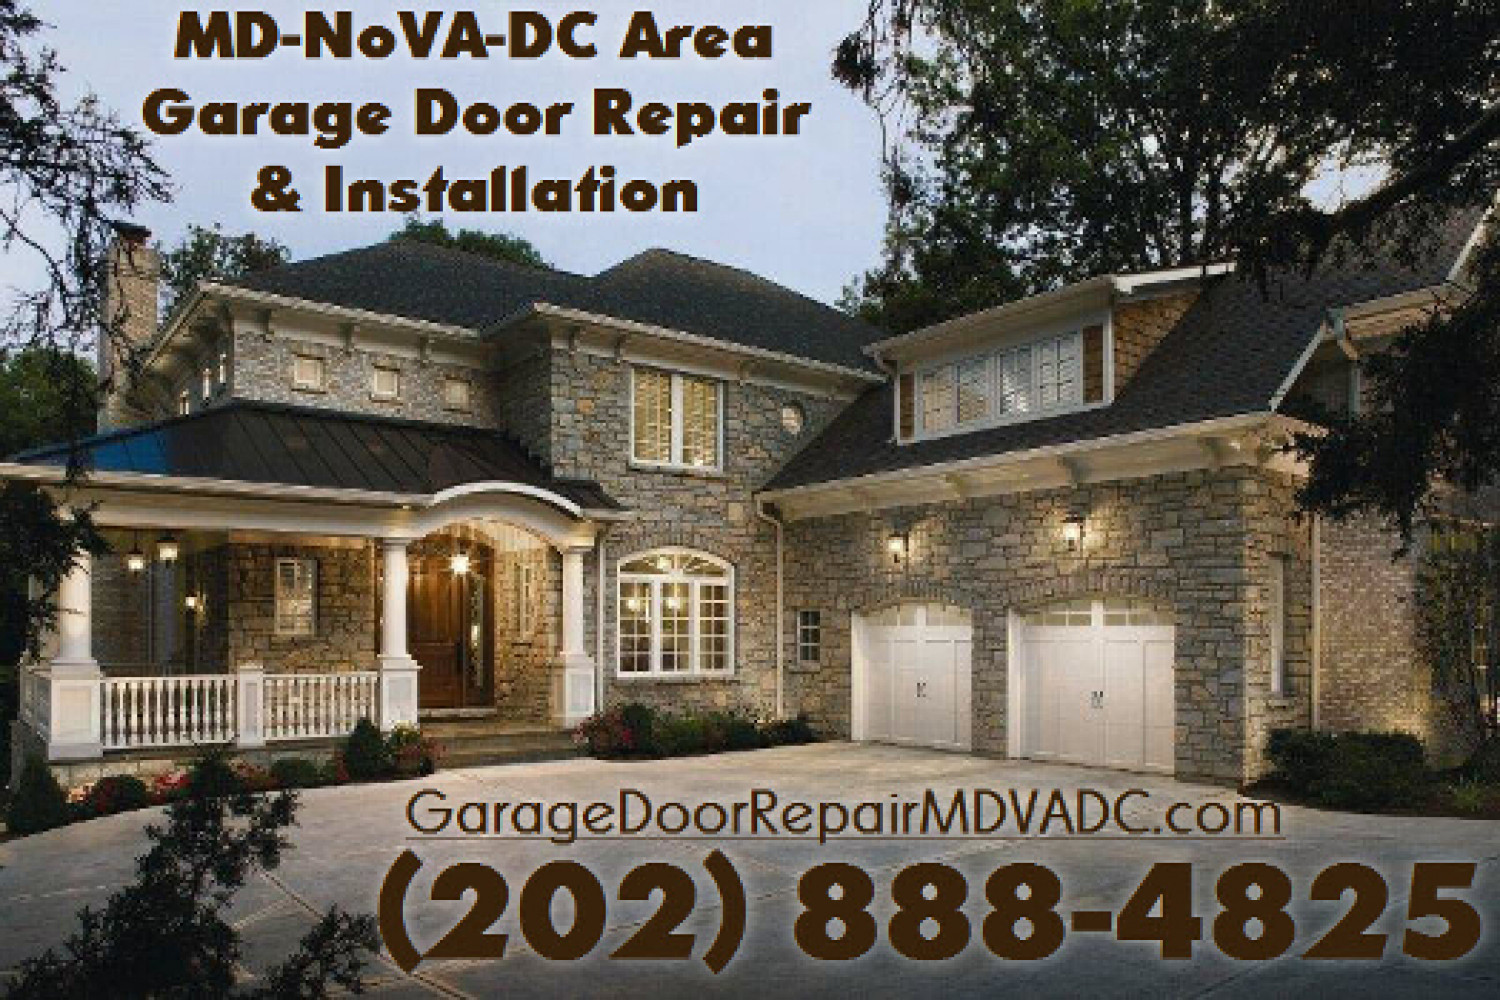 1000 #5F4D36 DC Area Garage Doors Infographic wallpaper Garage Doors In My Area 37451500